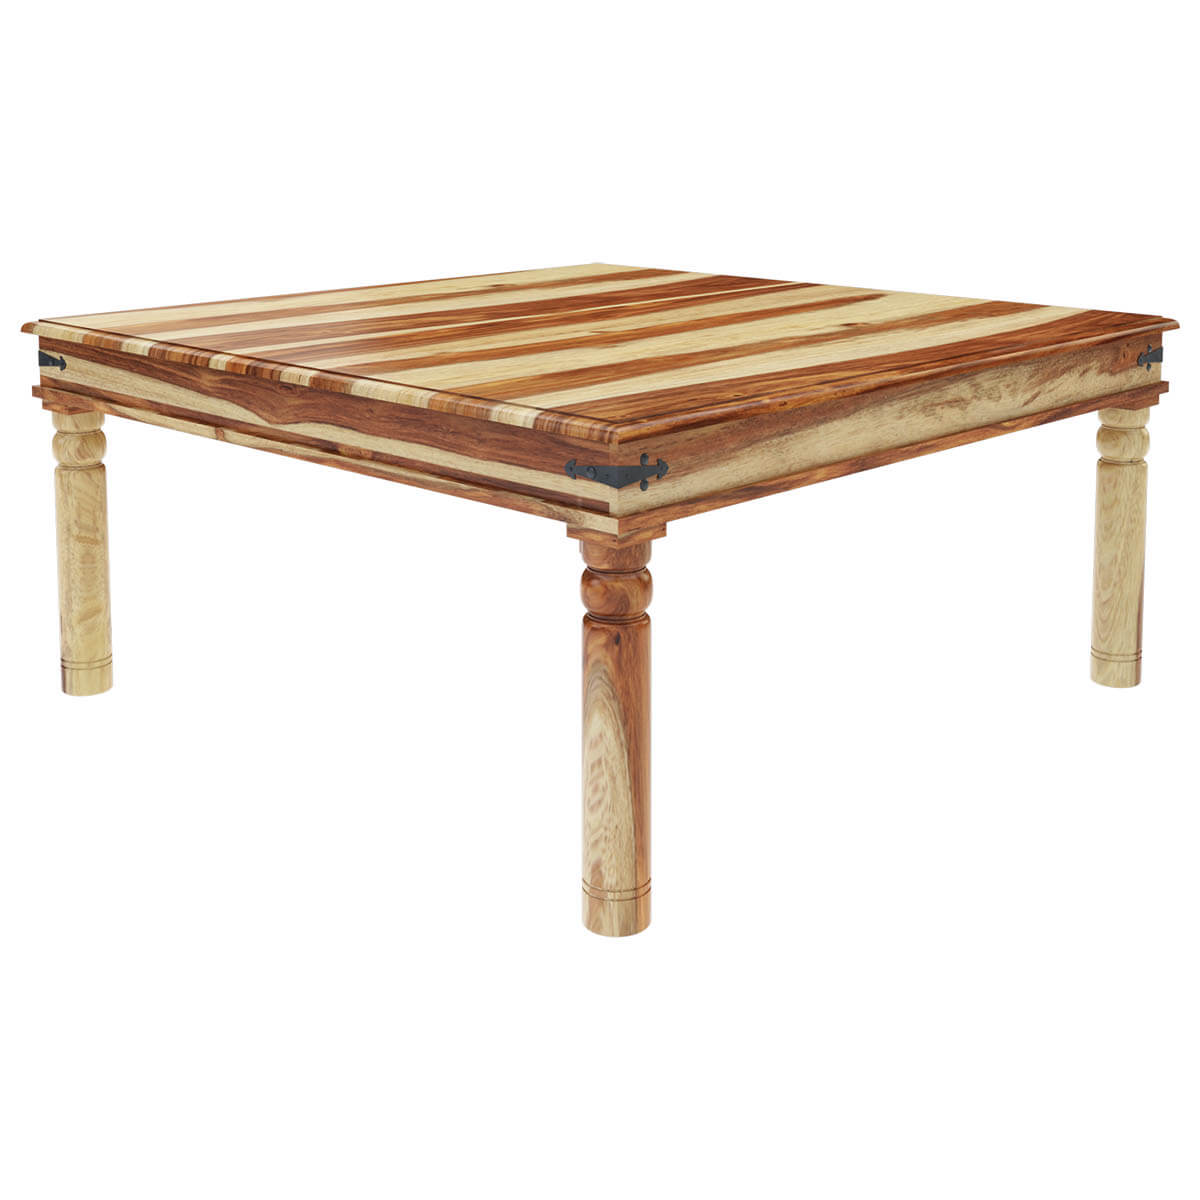 Seater Square Dining Table 64 Made Of Solid Wood Planks